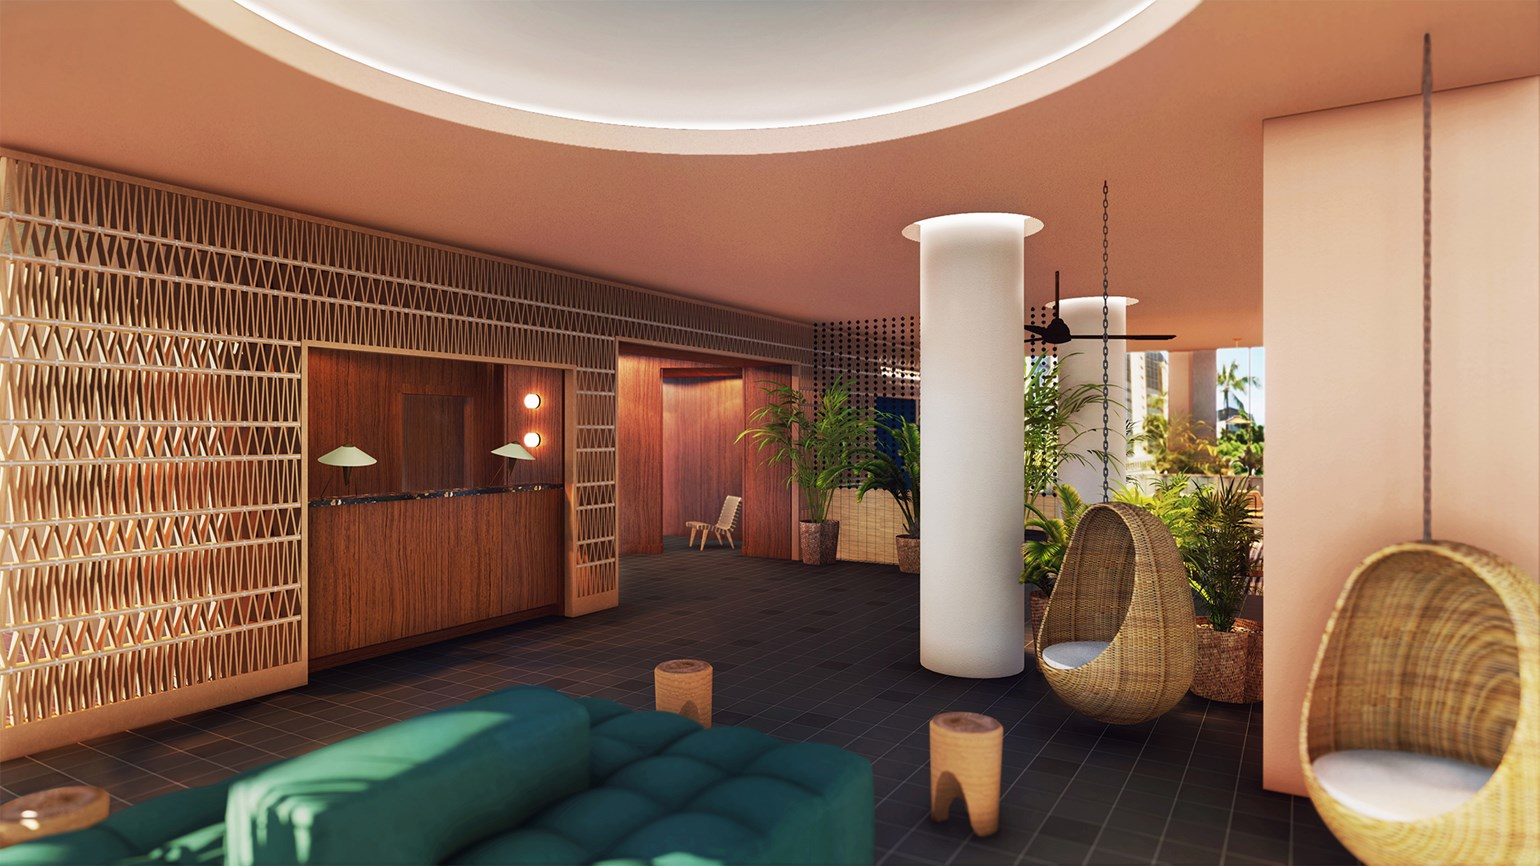 Midcentury vibe at millennial-friendly Laylow hotel